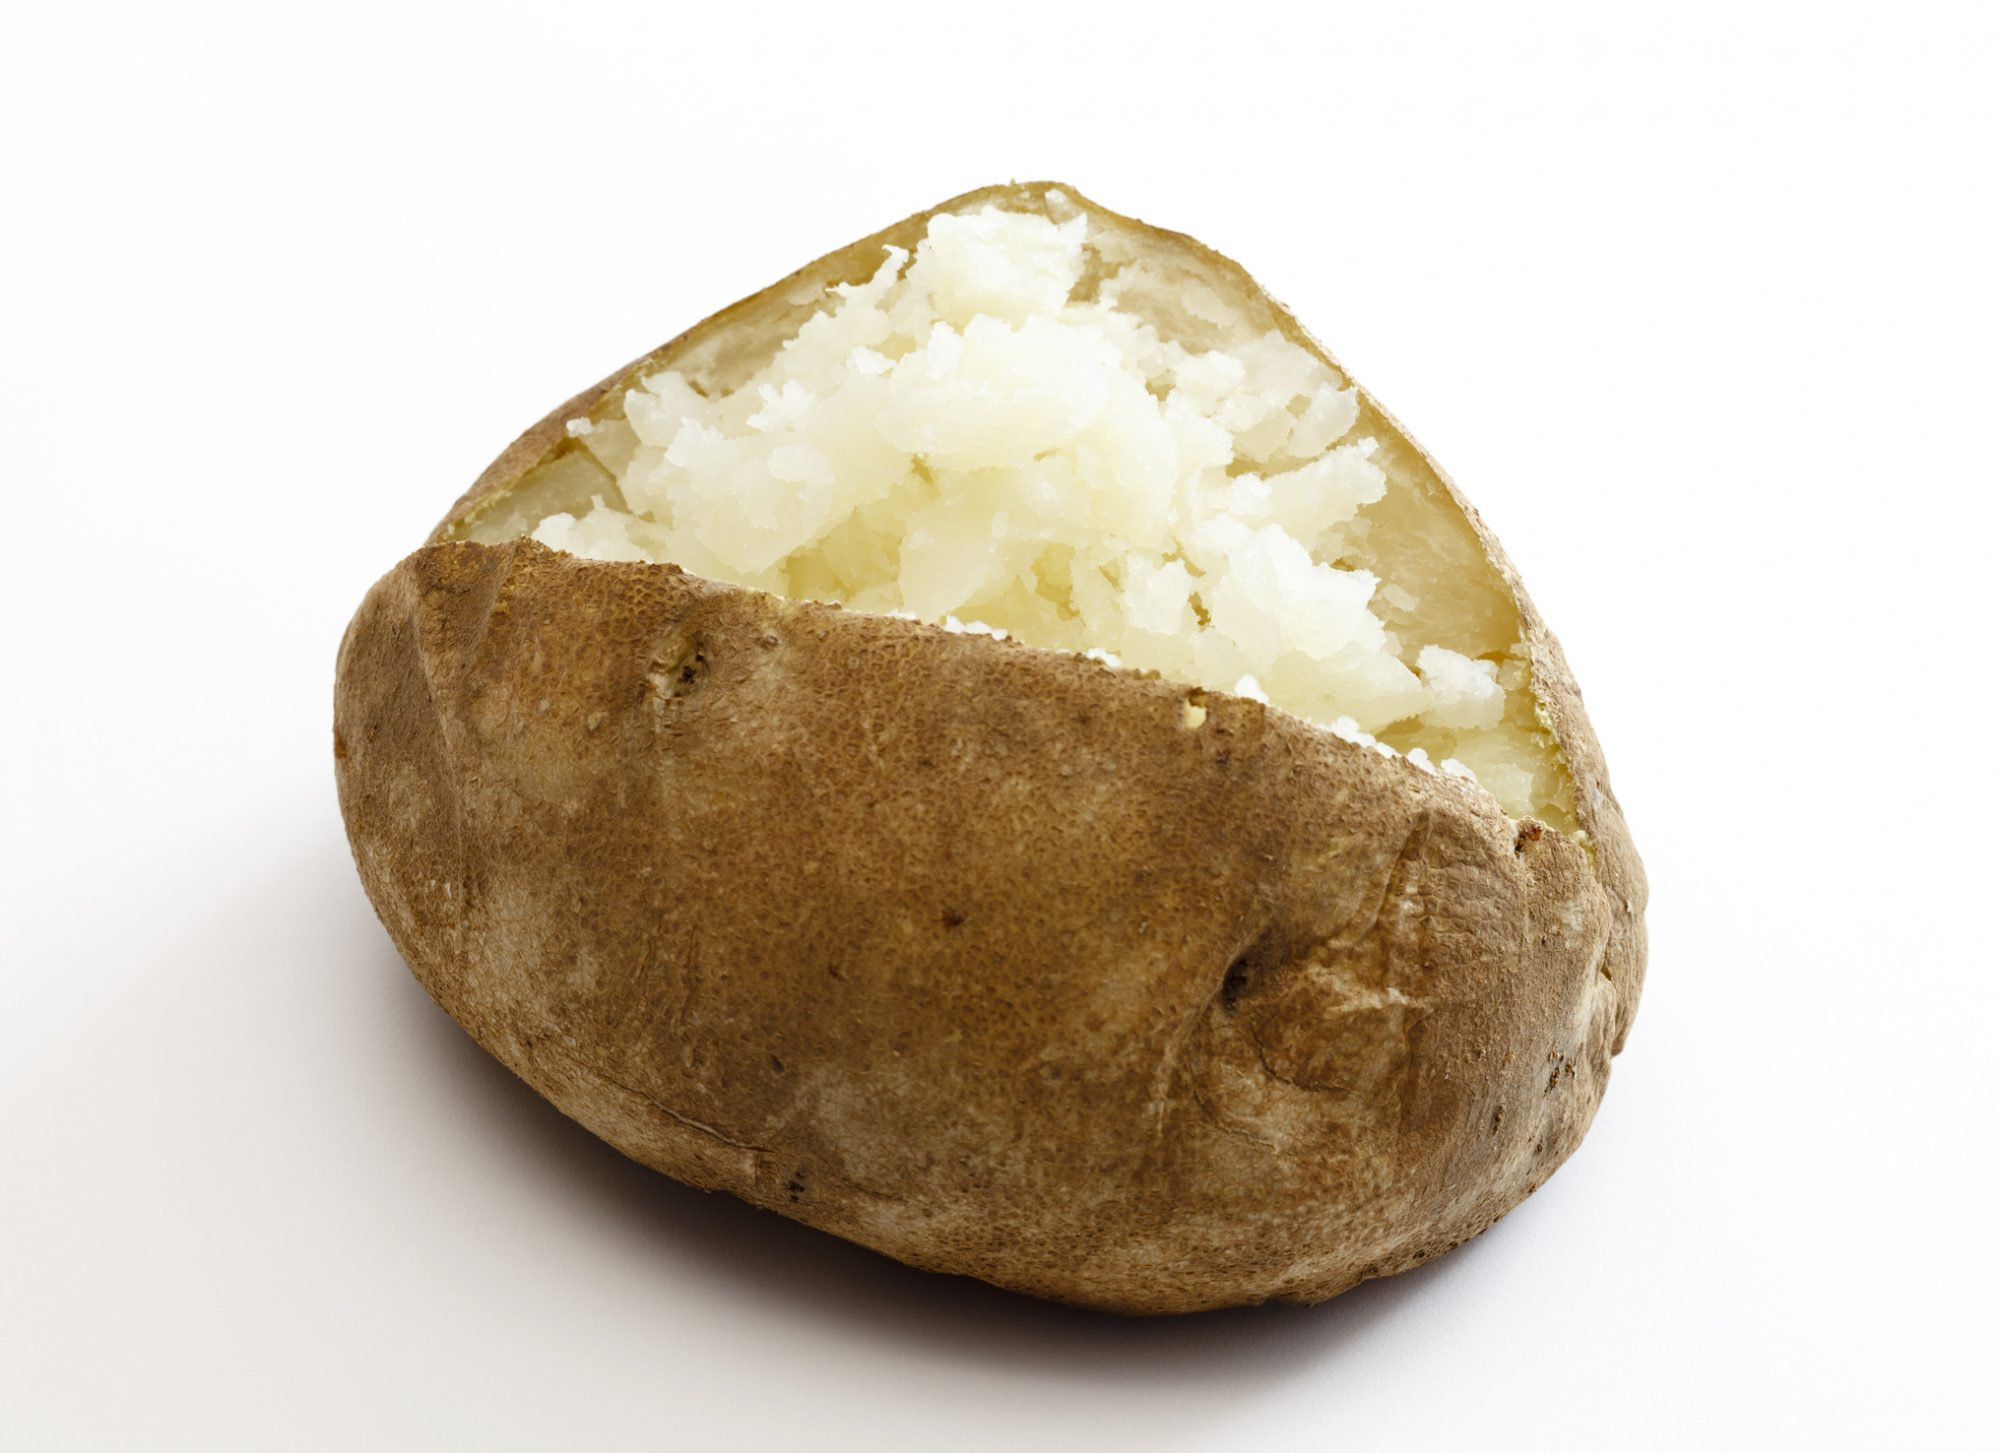 getty-baked-potato-image